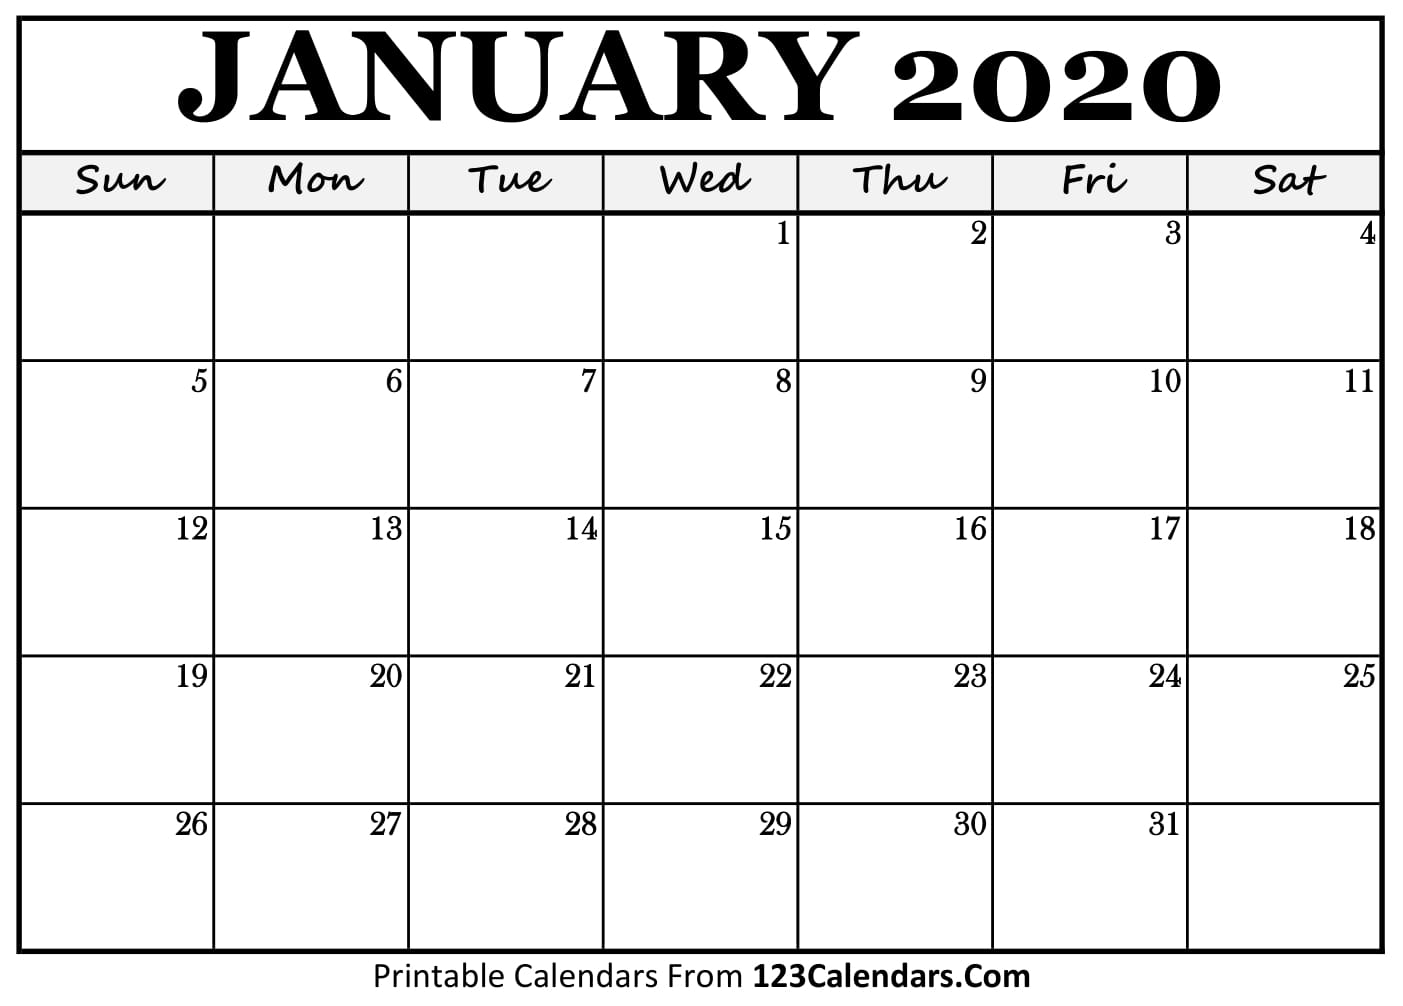 January 2020 Calendar Of Events January 2020 Printable Calendar | 123Calendars.com